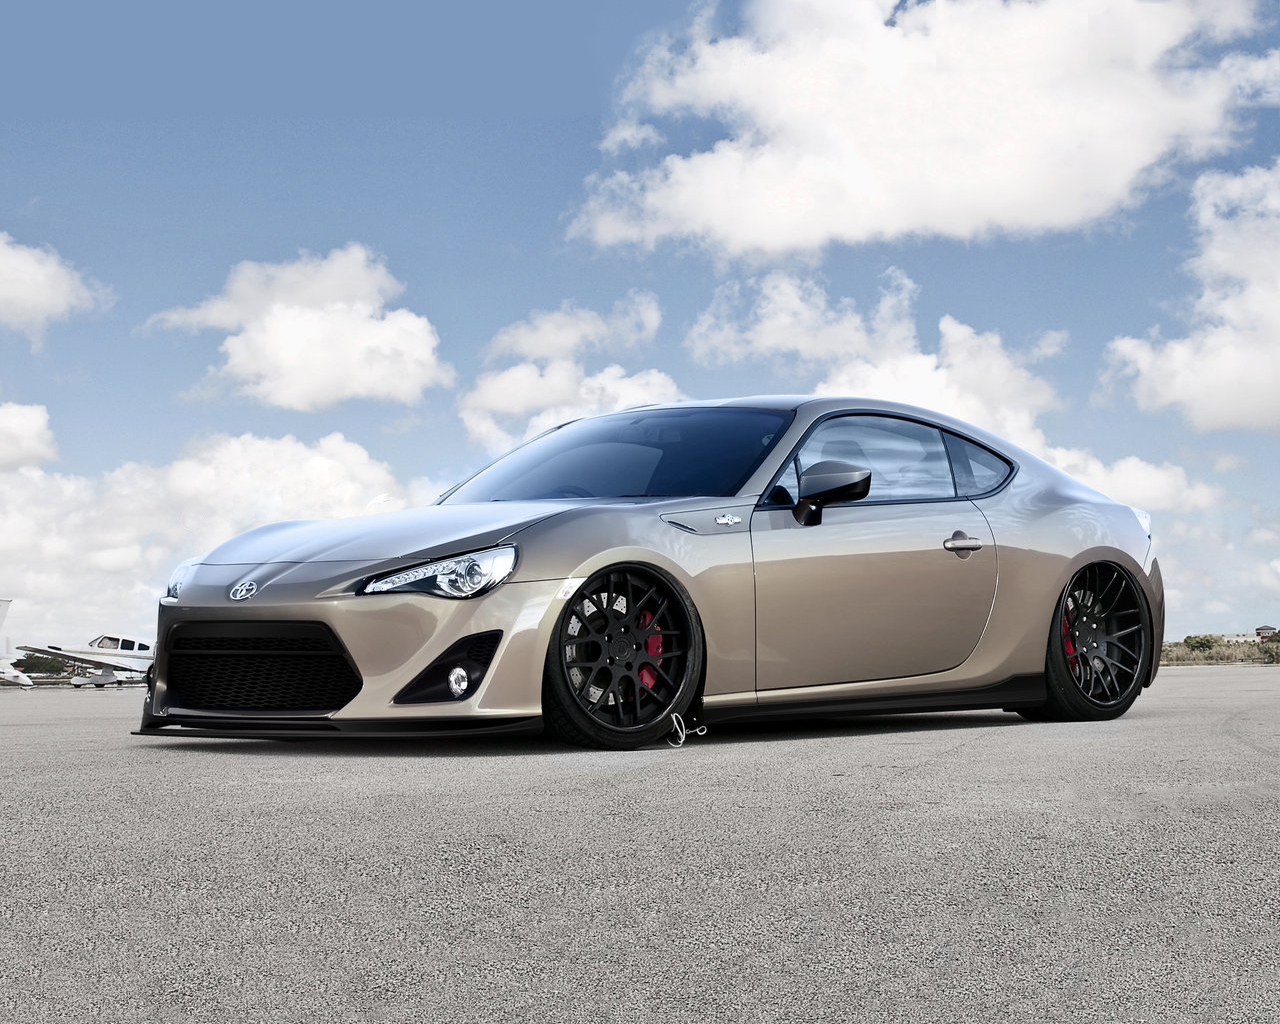 Can you identify body mods on this FRS? - Scion FR-S Forum ...